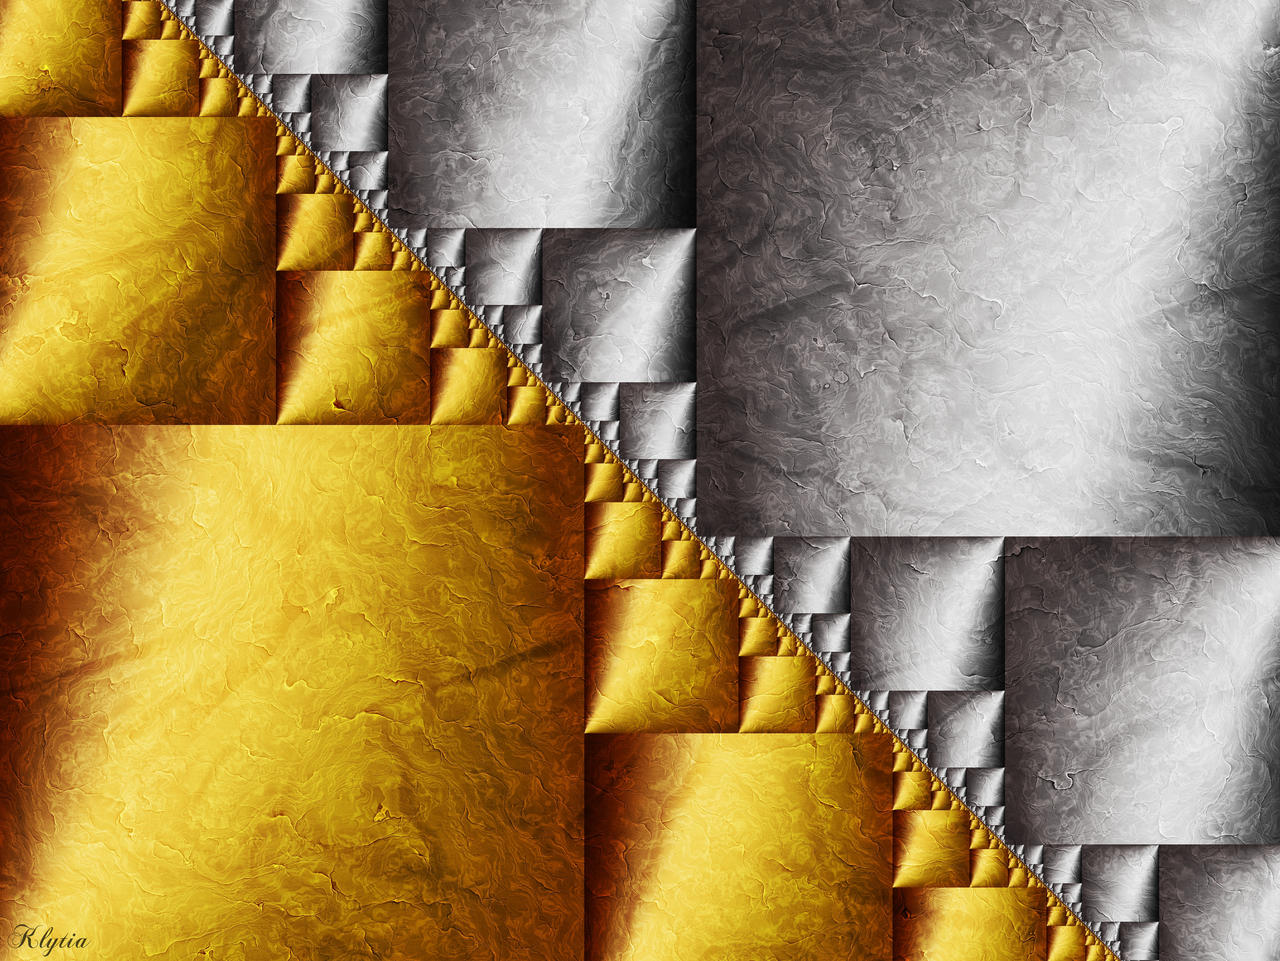 Gold And Silver Ii By Klytia70 On Deviantart